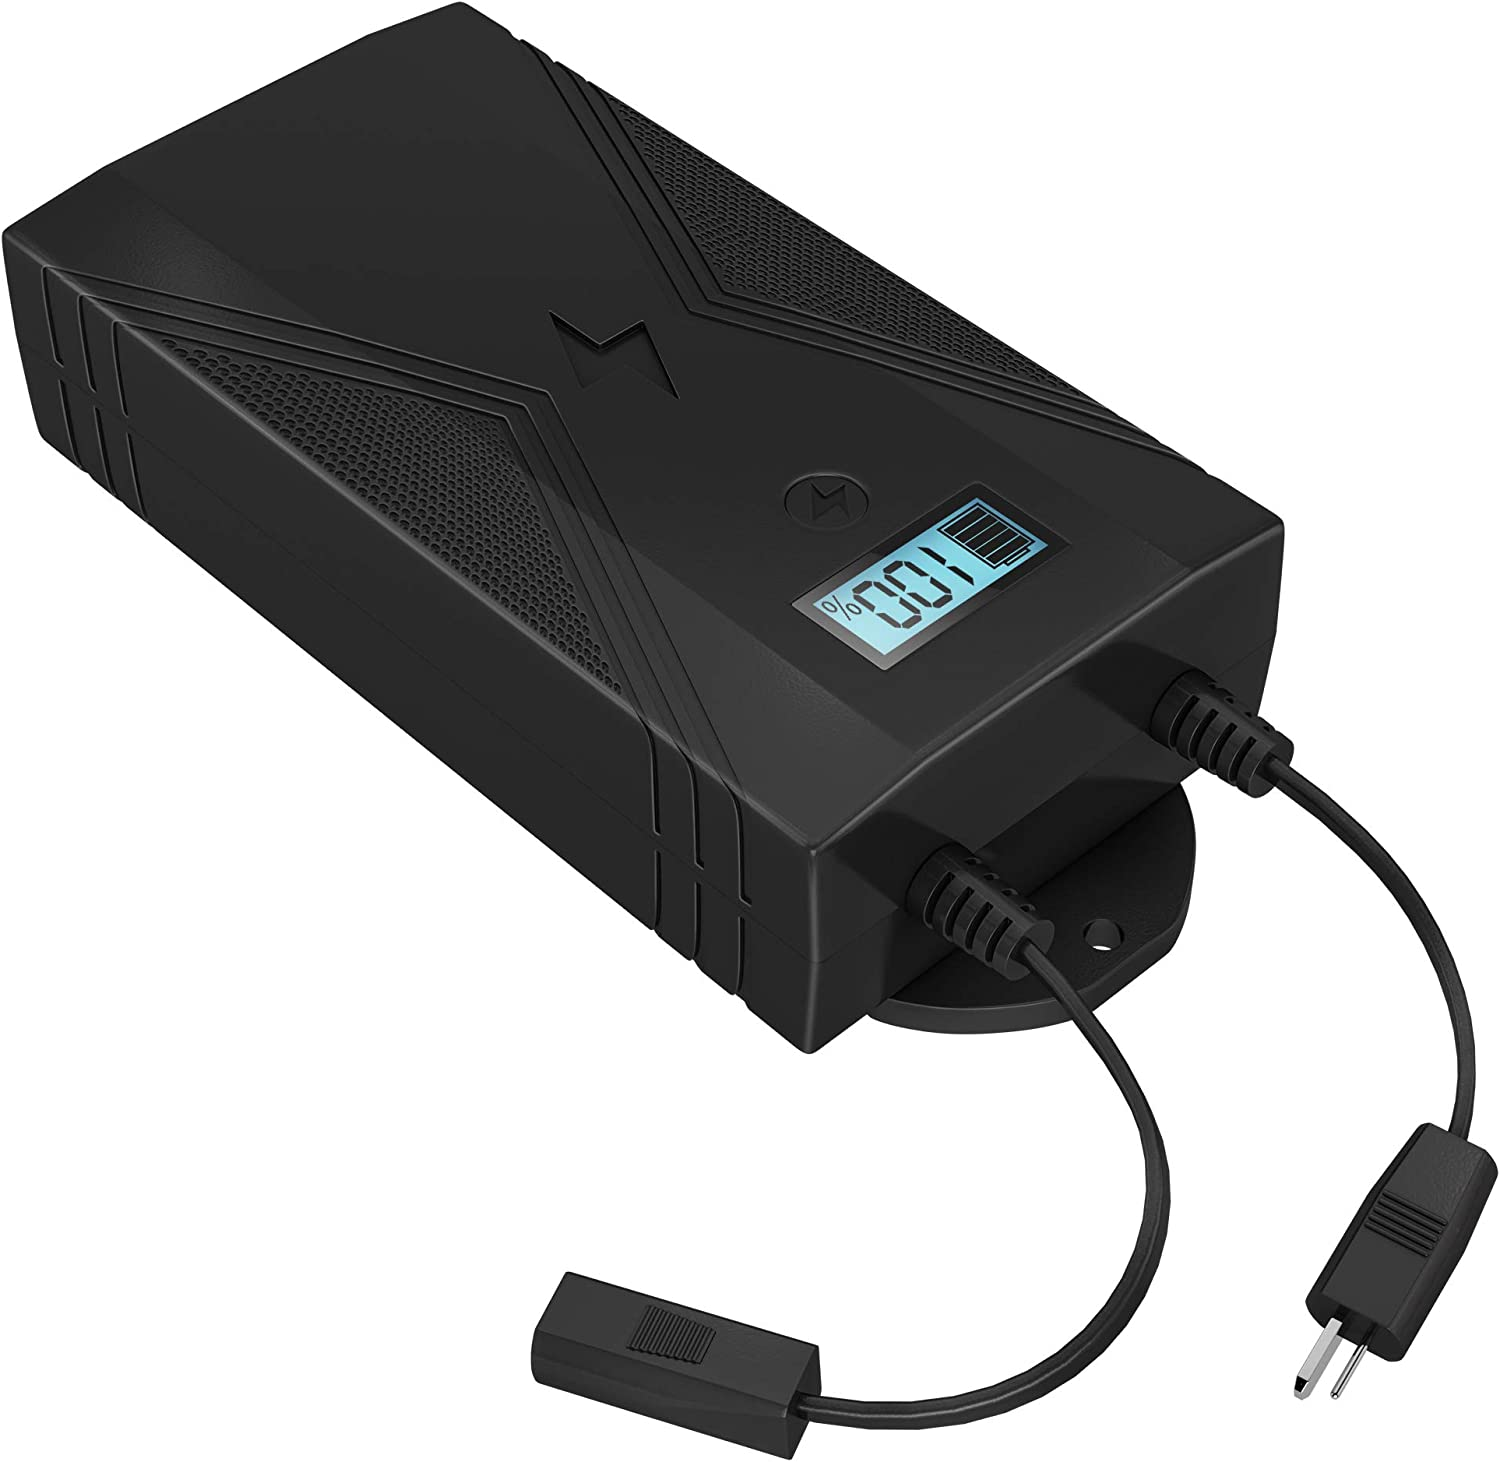 TOMSHEIR 2500mAh Battery Pack for Reclining Furniture (Universal for Most Recliner) Recliner Battery Pack Rechargeable Power Supply 29V 24V 2A for Power Recliner, Sofas, Chairs, Couch